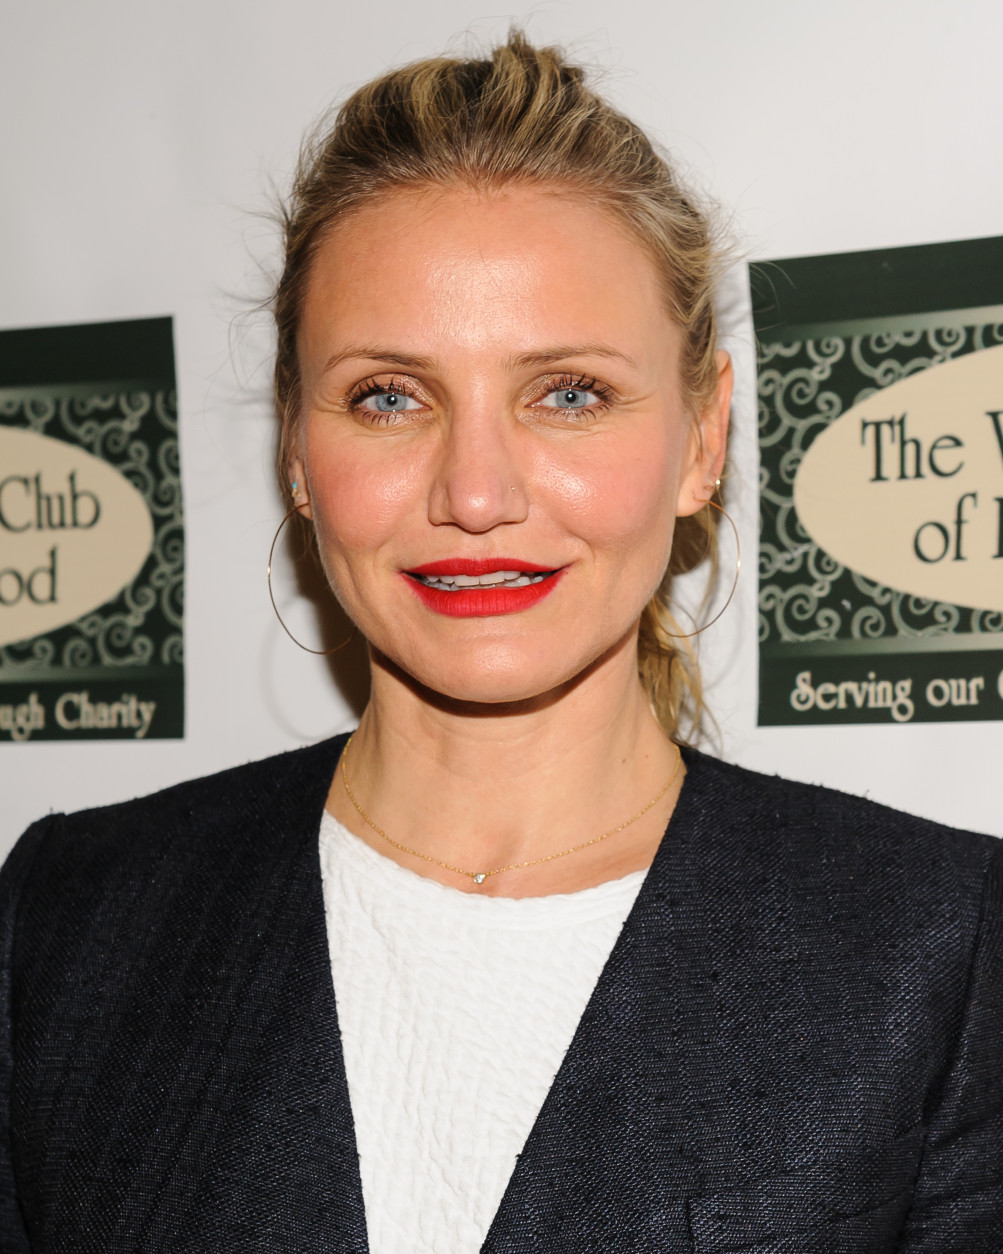 """Actress Cameron Diaz attends a book signing to promote her new book, """"Longevity Book"""", at Bookends on Thursday, April 7, 2016, in Ridgewood, N.J. (Photo by Christopher Smith/Invision/AP)"""